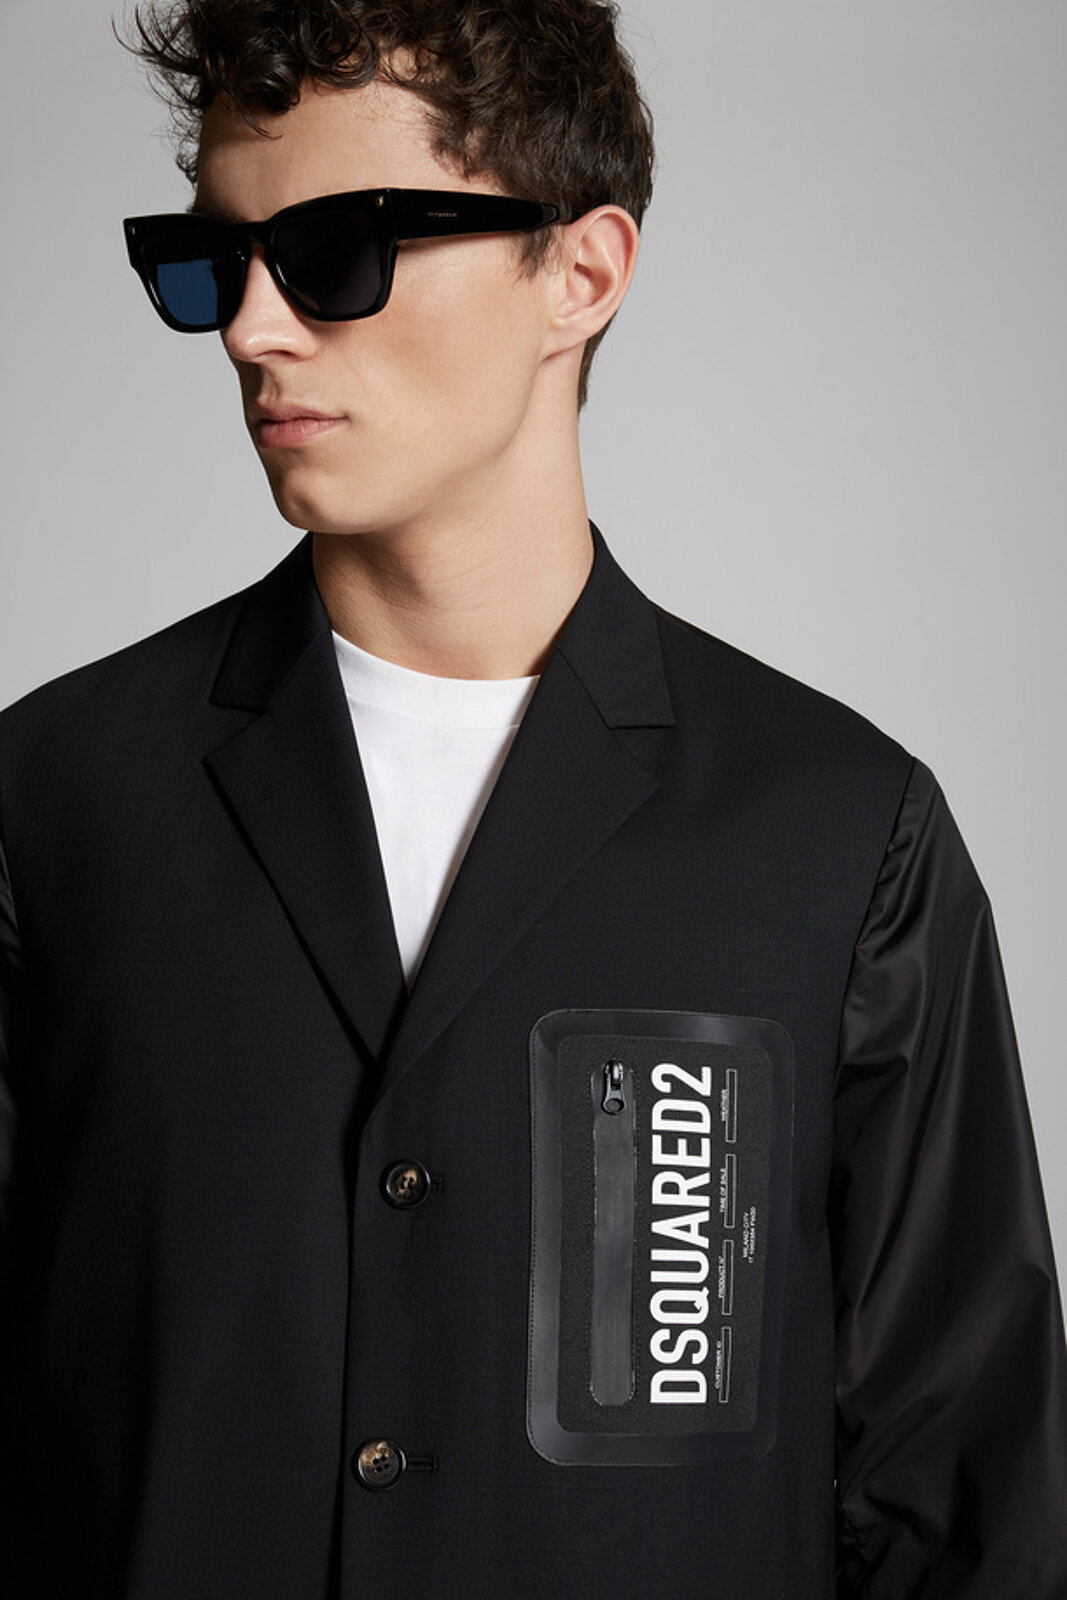 Tropical Stretch Wool Olympic Jacket - Dsquared2